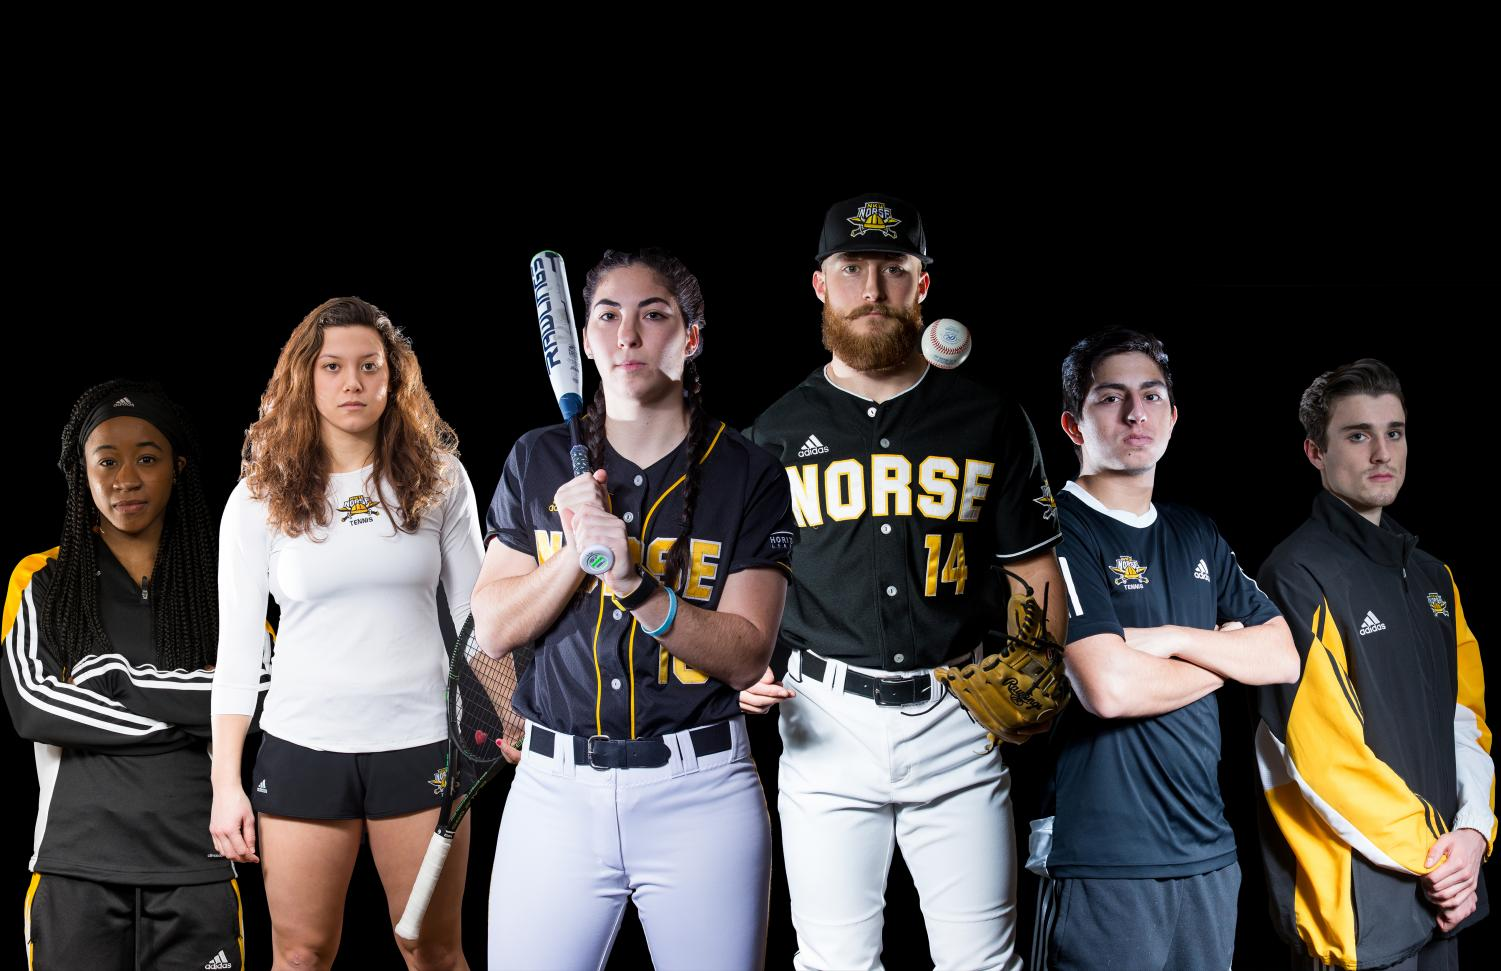 NKU's spring sports have started and the Northerner has everything you need to know for each team